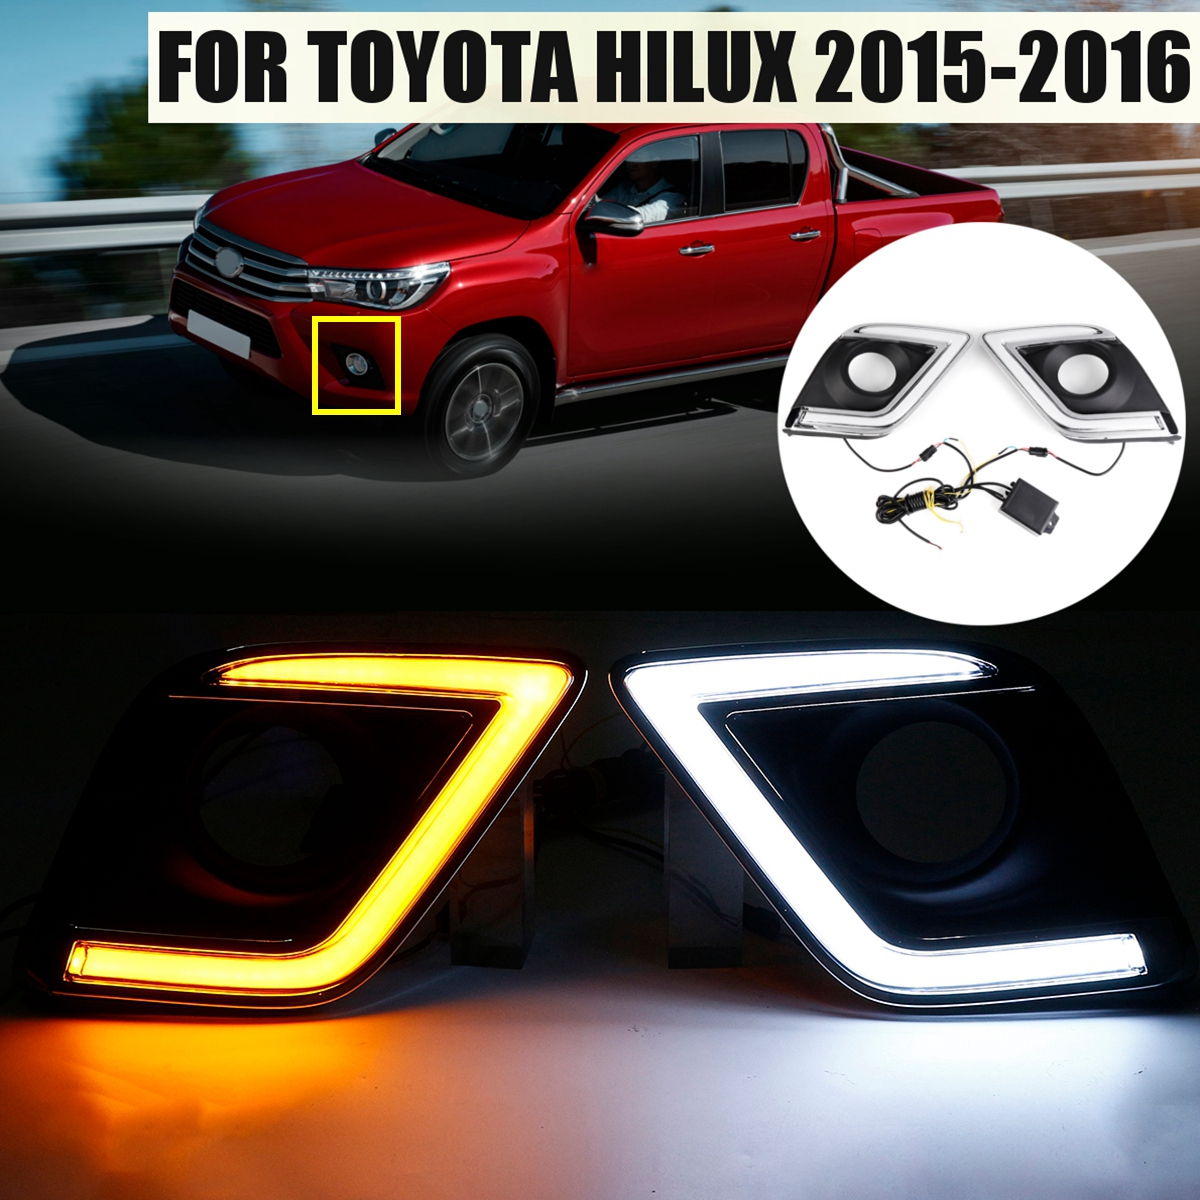 For Toyota Hilux Revo 2015-2016 1 Pair Car LED DRL Daytime Running Lights Turn Signal Lamp DRL fog lamp cover with turn signal 1 pair car led lights 12 24v drl head lights 8w turn light strip